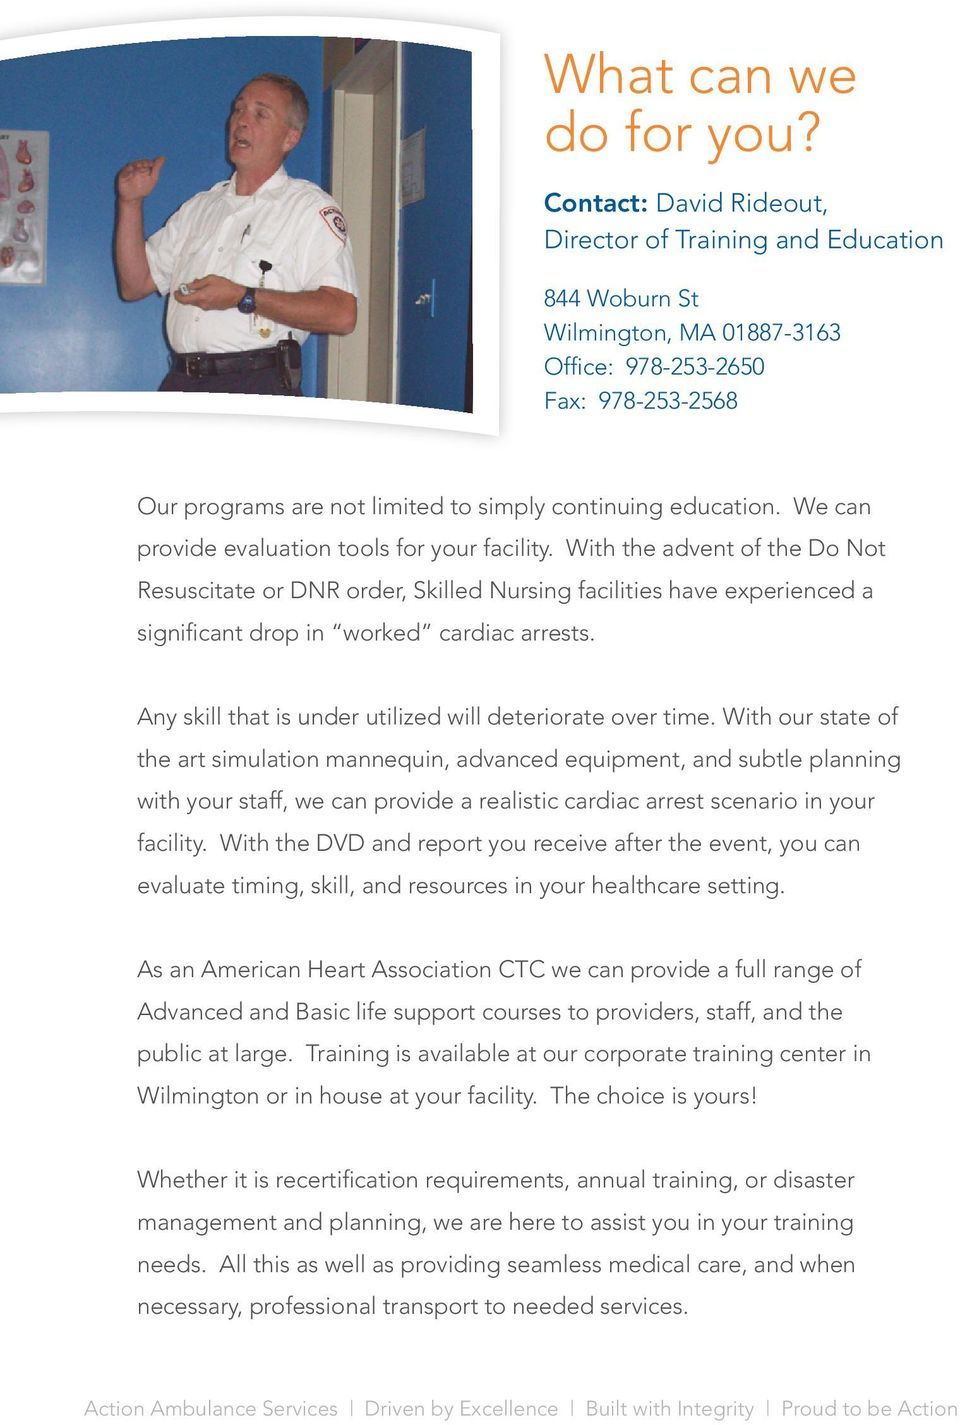 We can provide evaluation tools for your facility. With the advent of the Do Not Resuscitate or DNR order, Skilled Nursing facilities have experienced a significant drop in worked cardiac arrests.